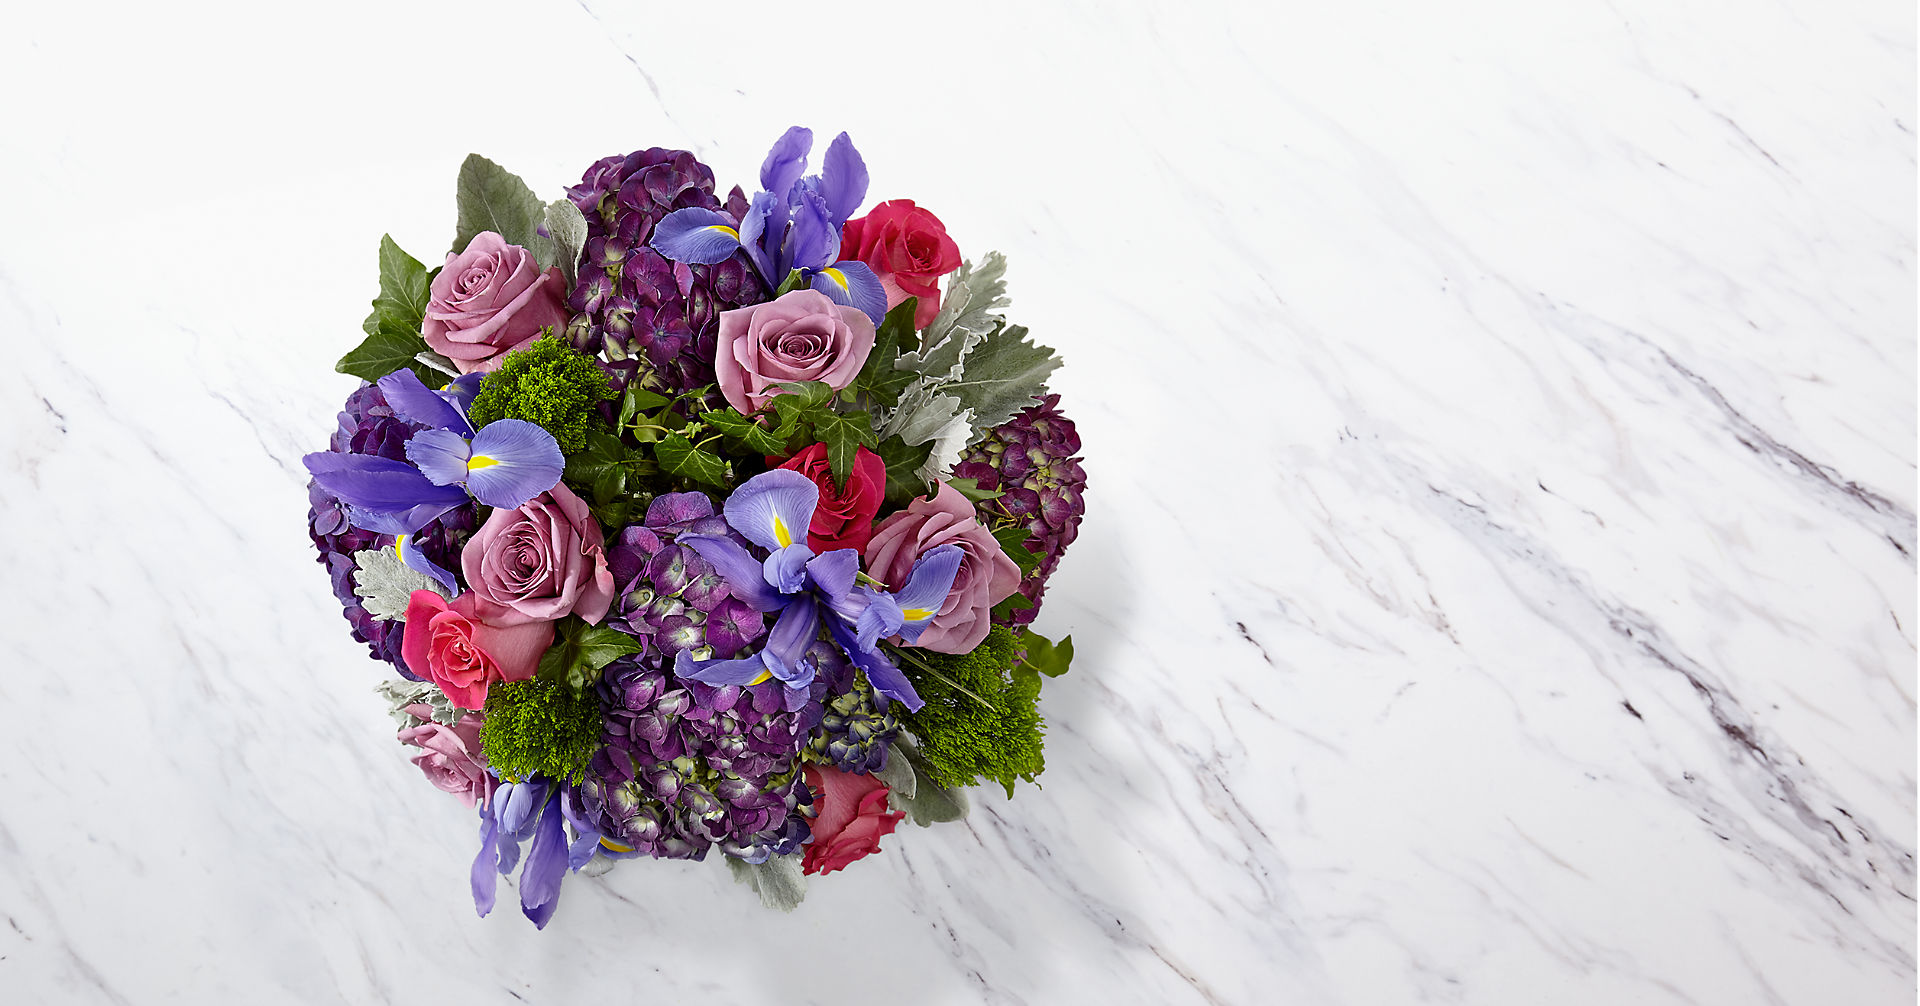 Lavender Luxe™ Luxury Bouquet - VASE INCLUDED - Image 2 Of 2